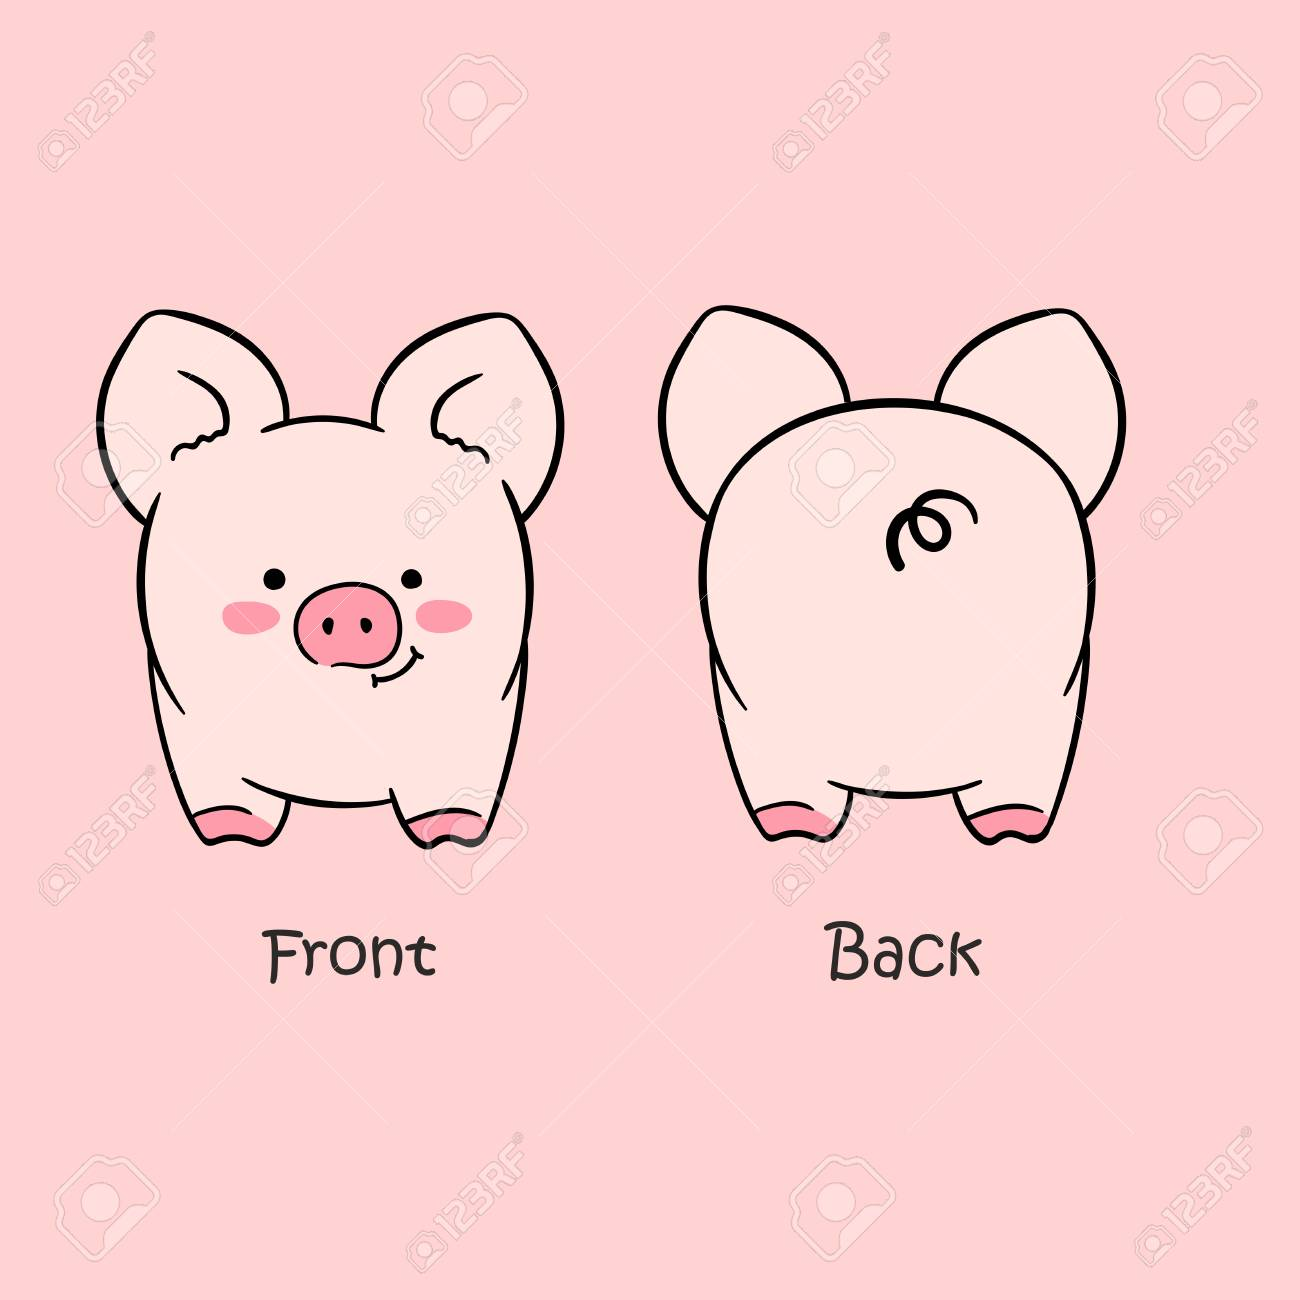 vector illustration of cartoon cute pink pig front view and back